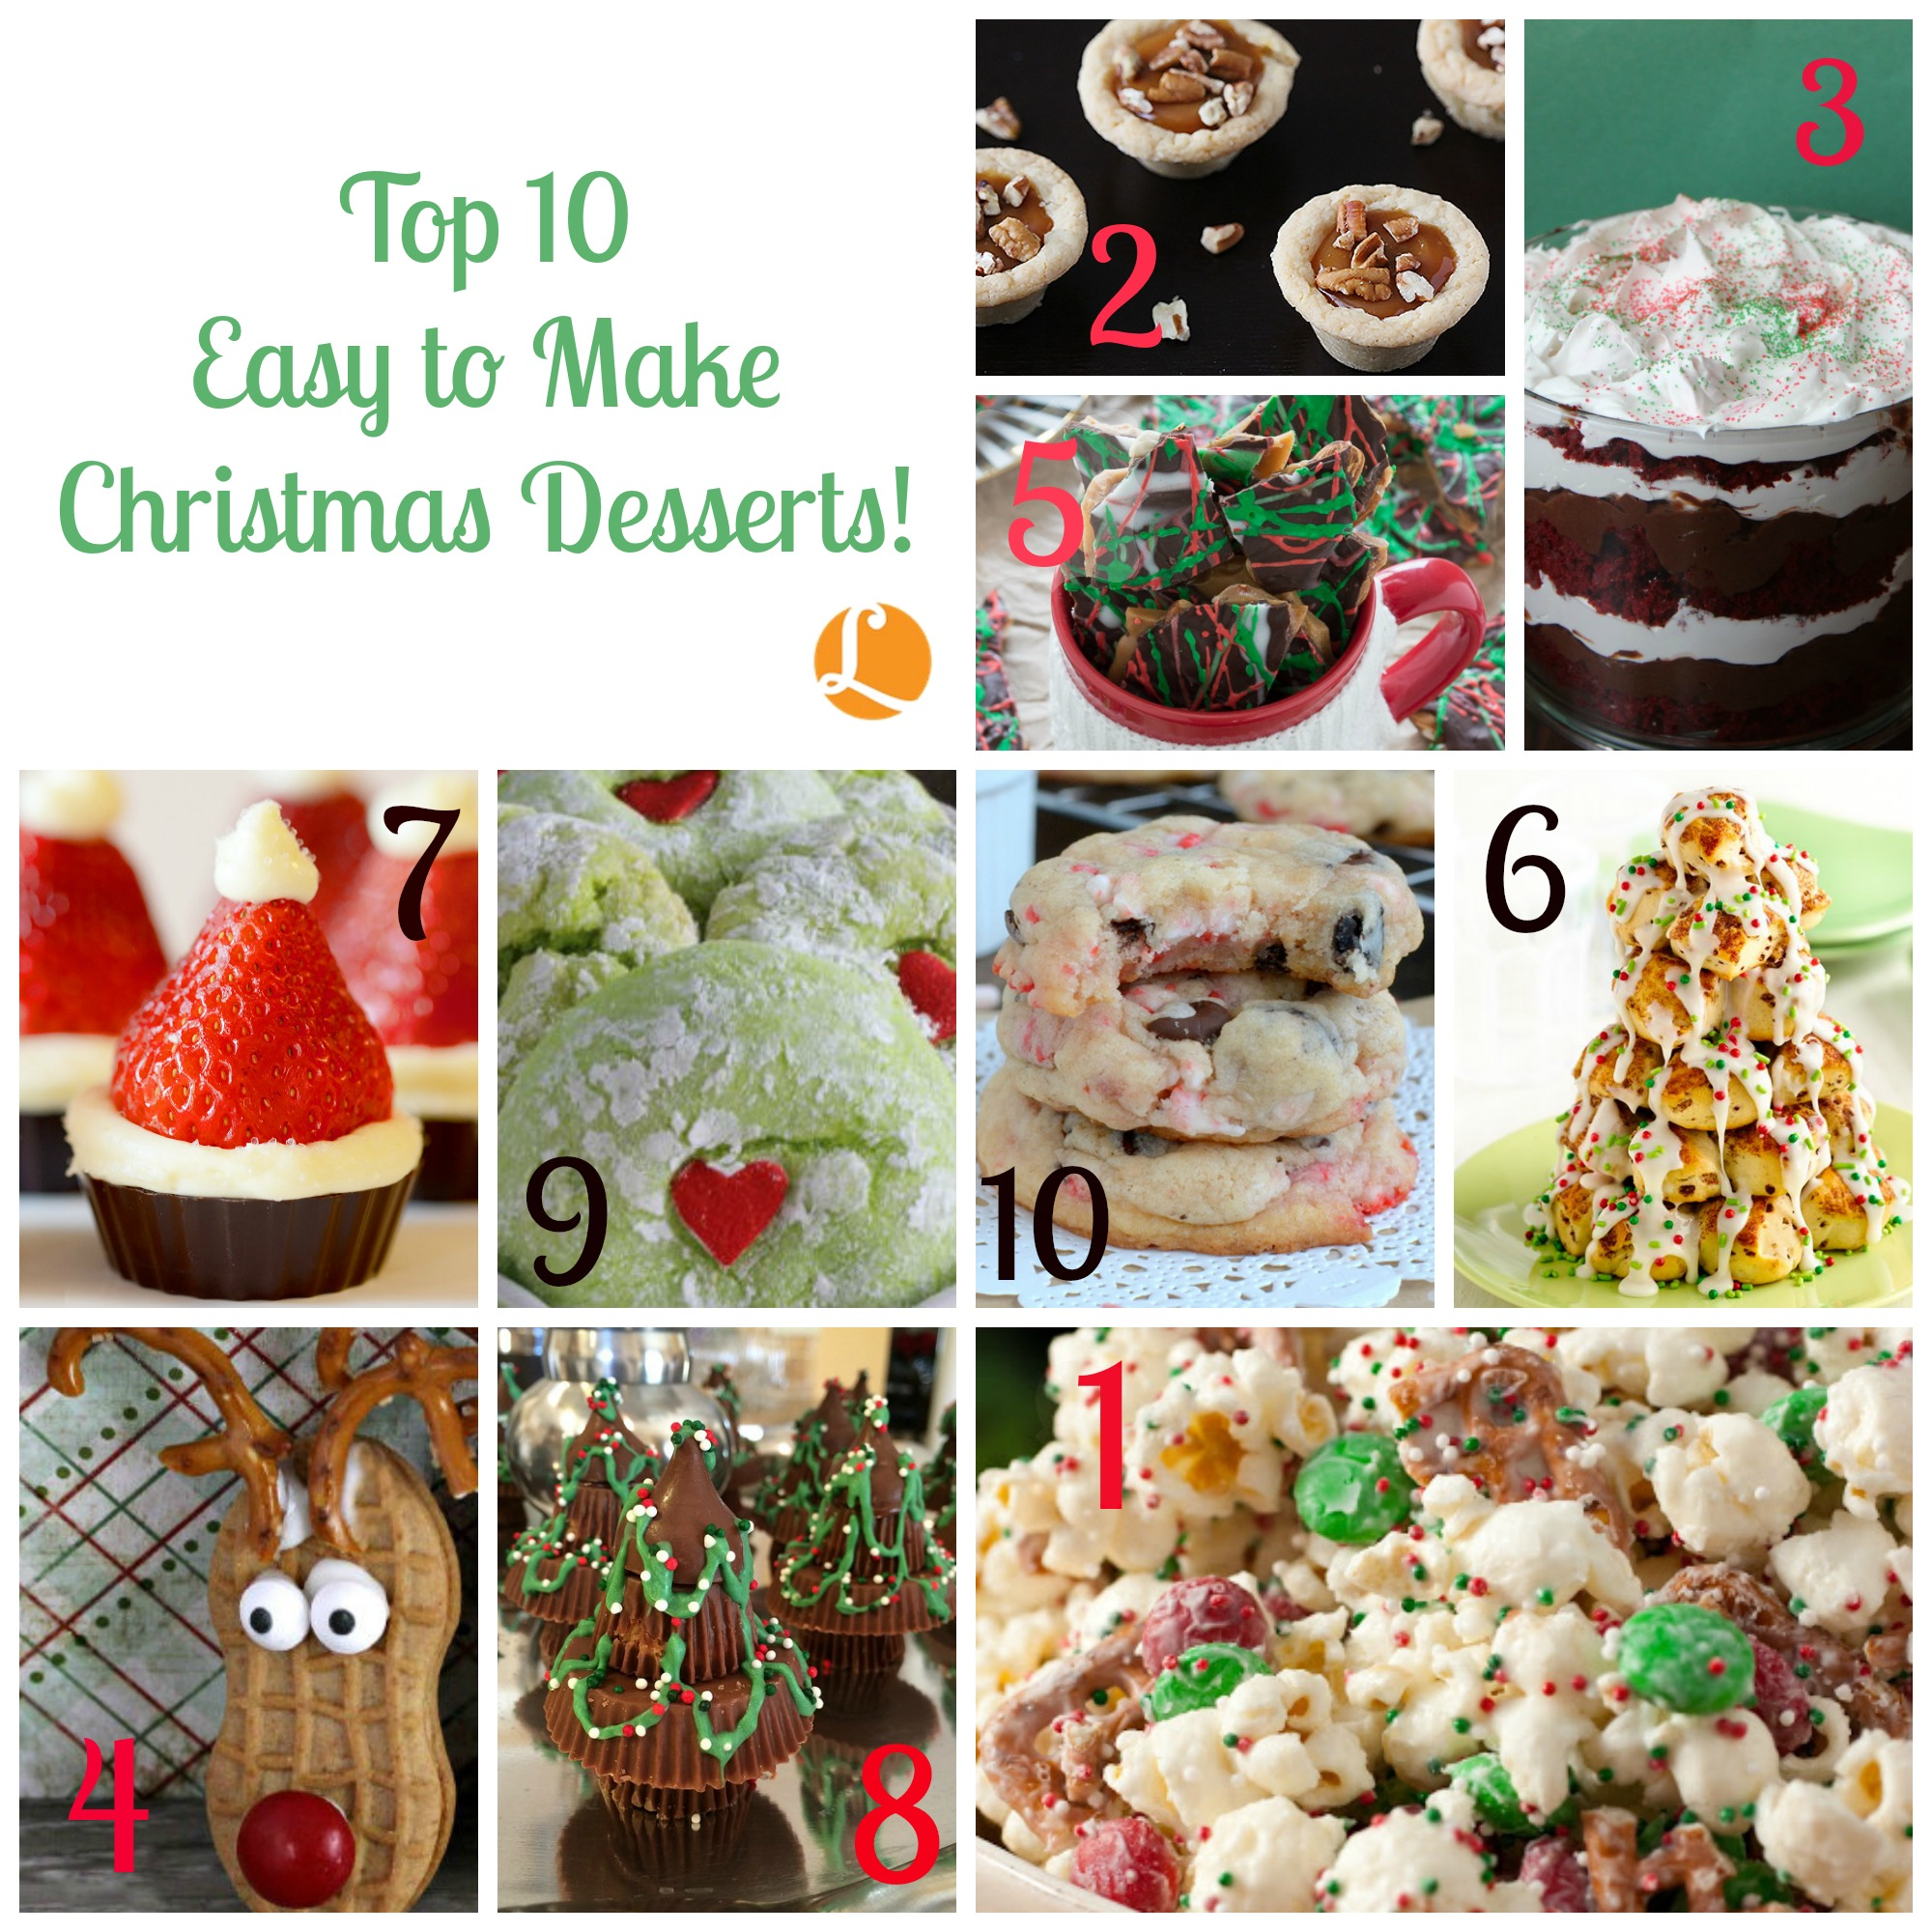 Top 10 Easy To Make Christmas Desserts –-Living Rich With